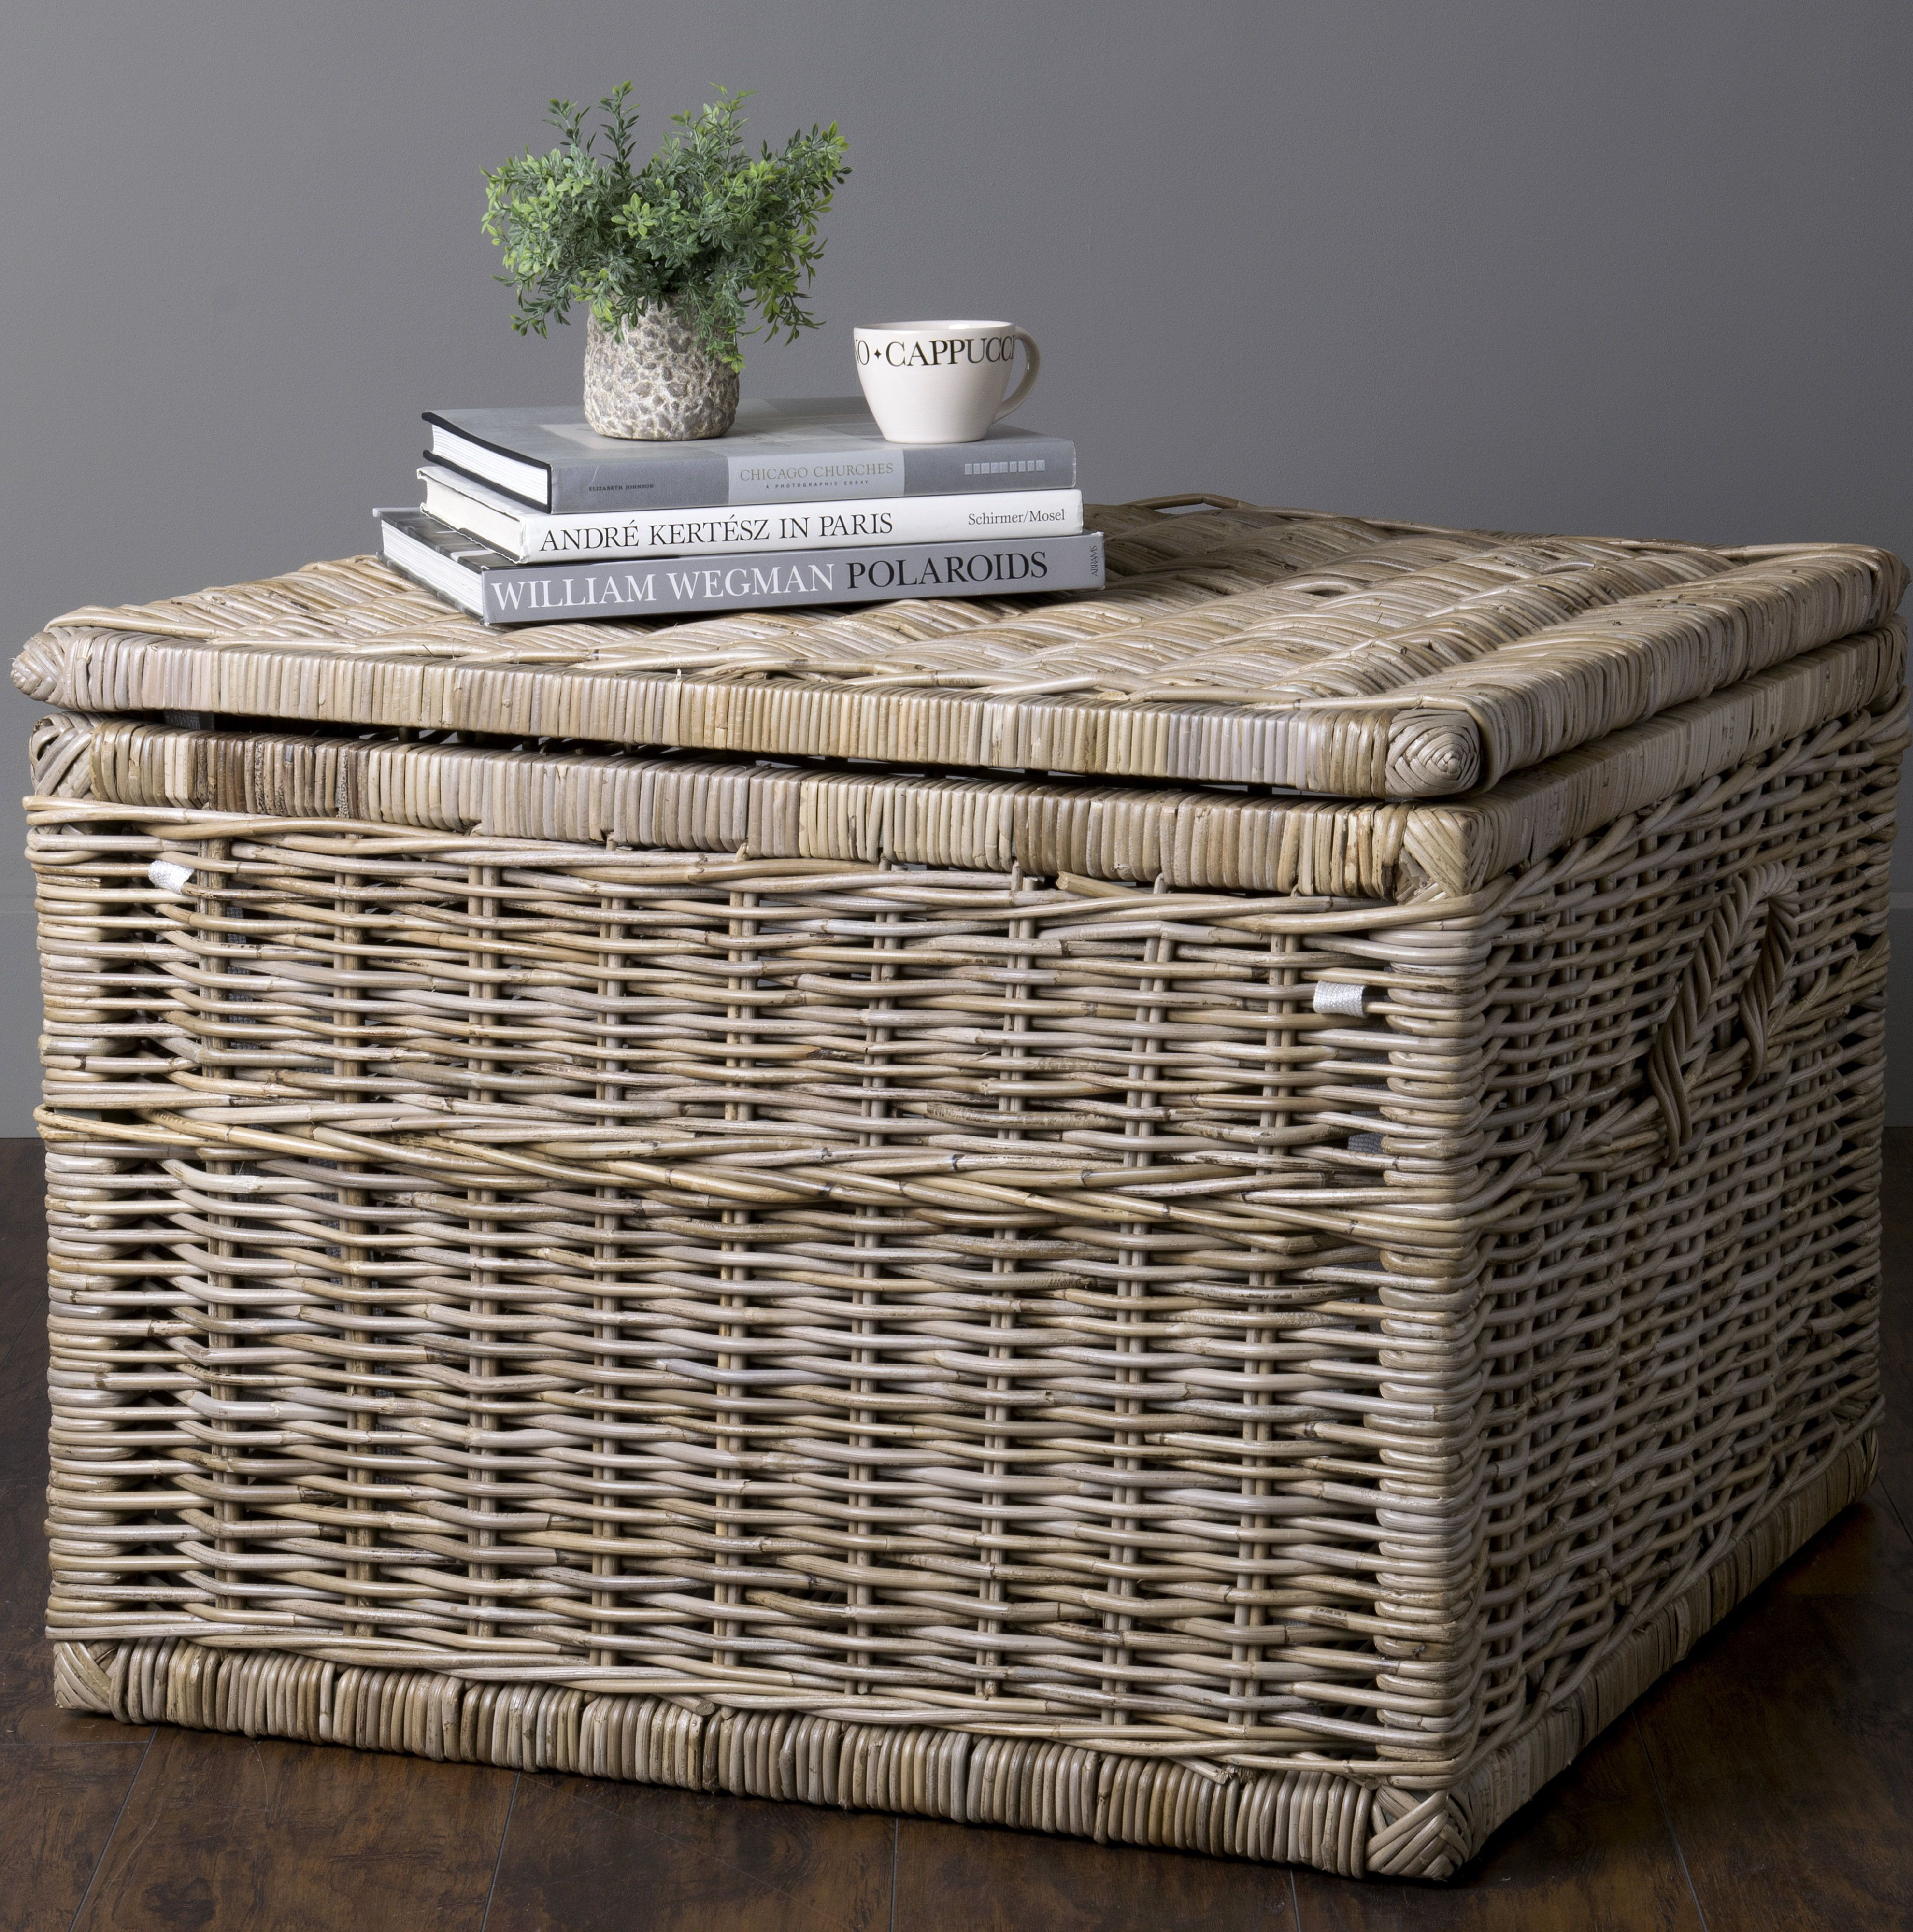 Best Wicker Baskets And Farmhouse Baskets For Your Home We Have A